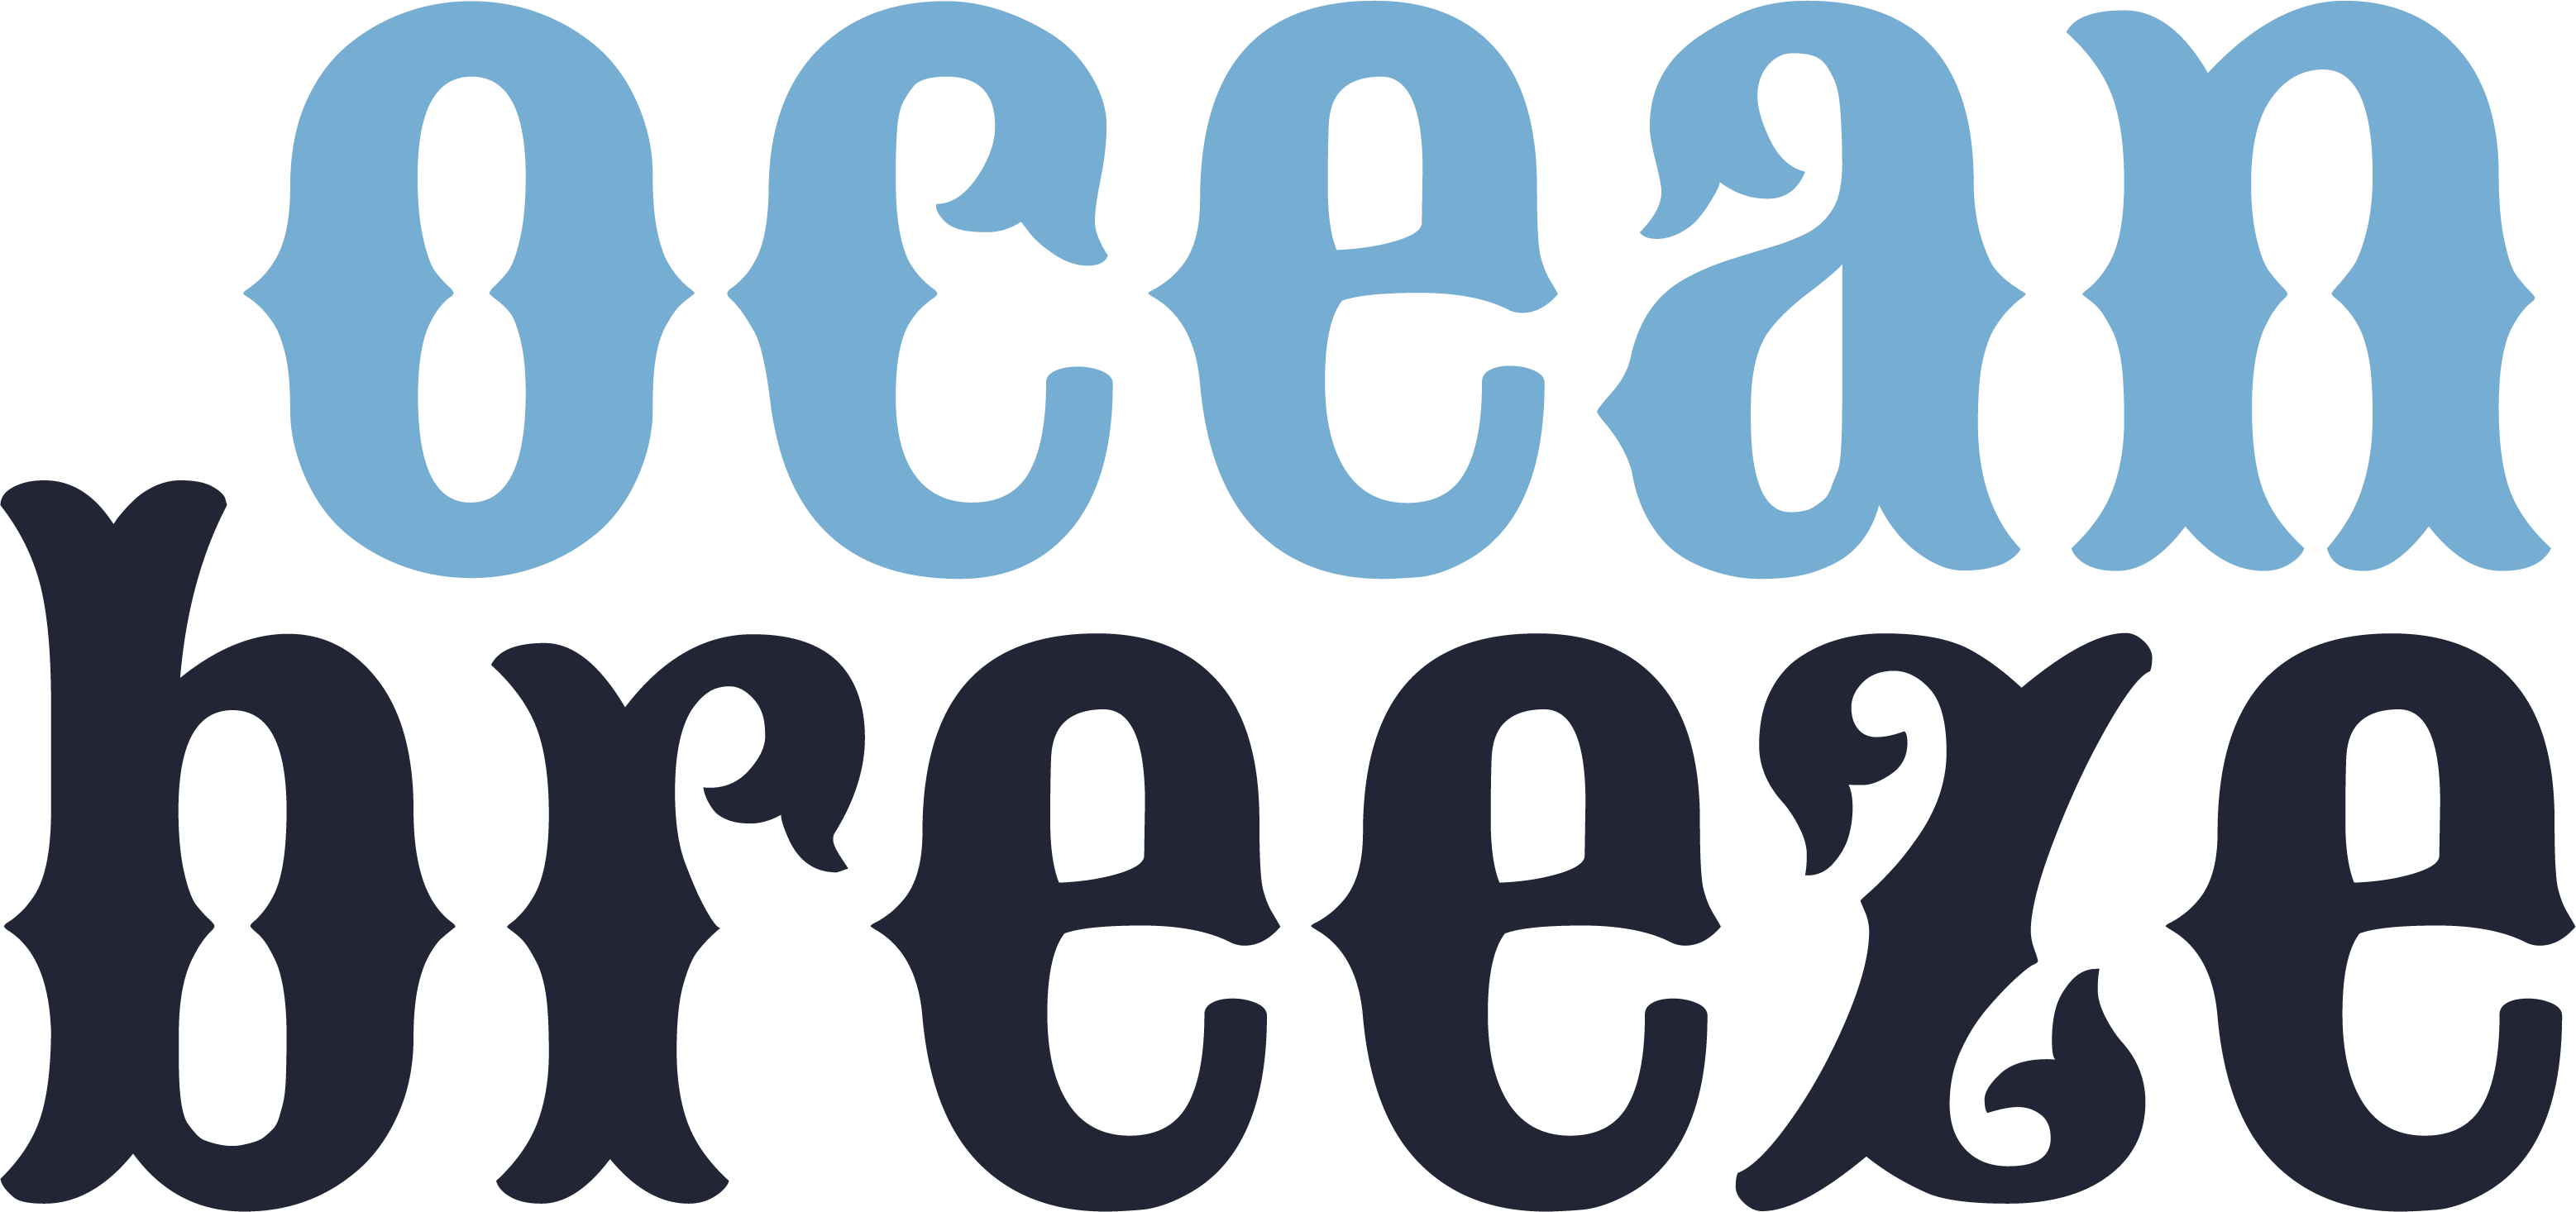 Ocean Breeze SVG Cut File